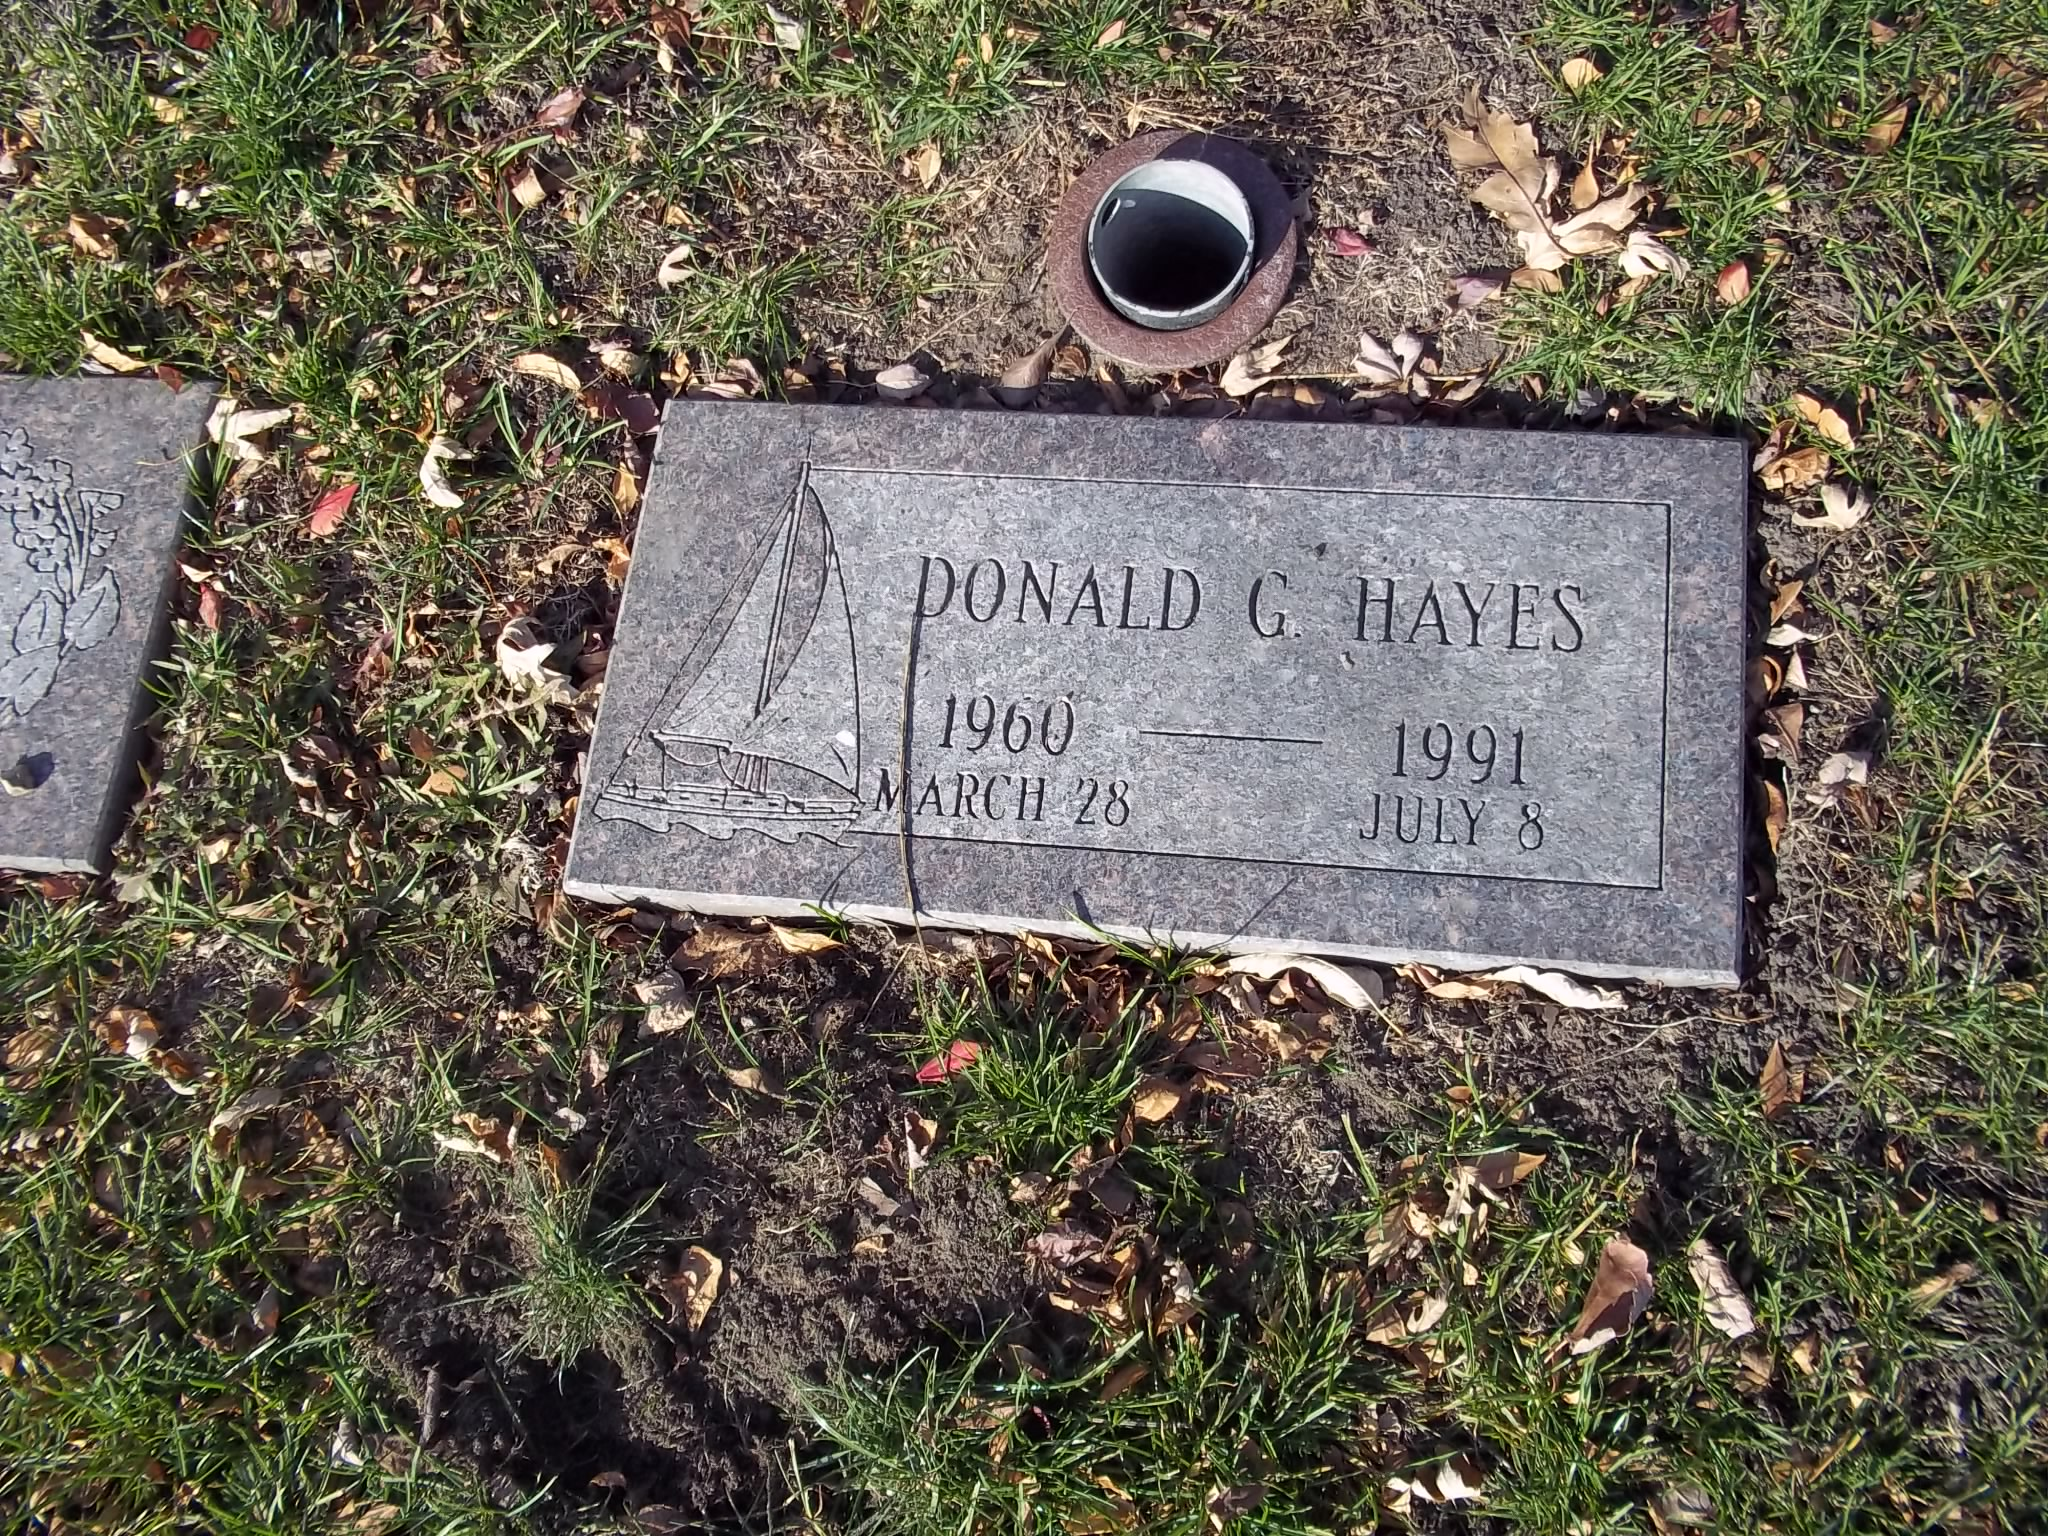 Donald G Hayes